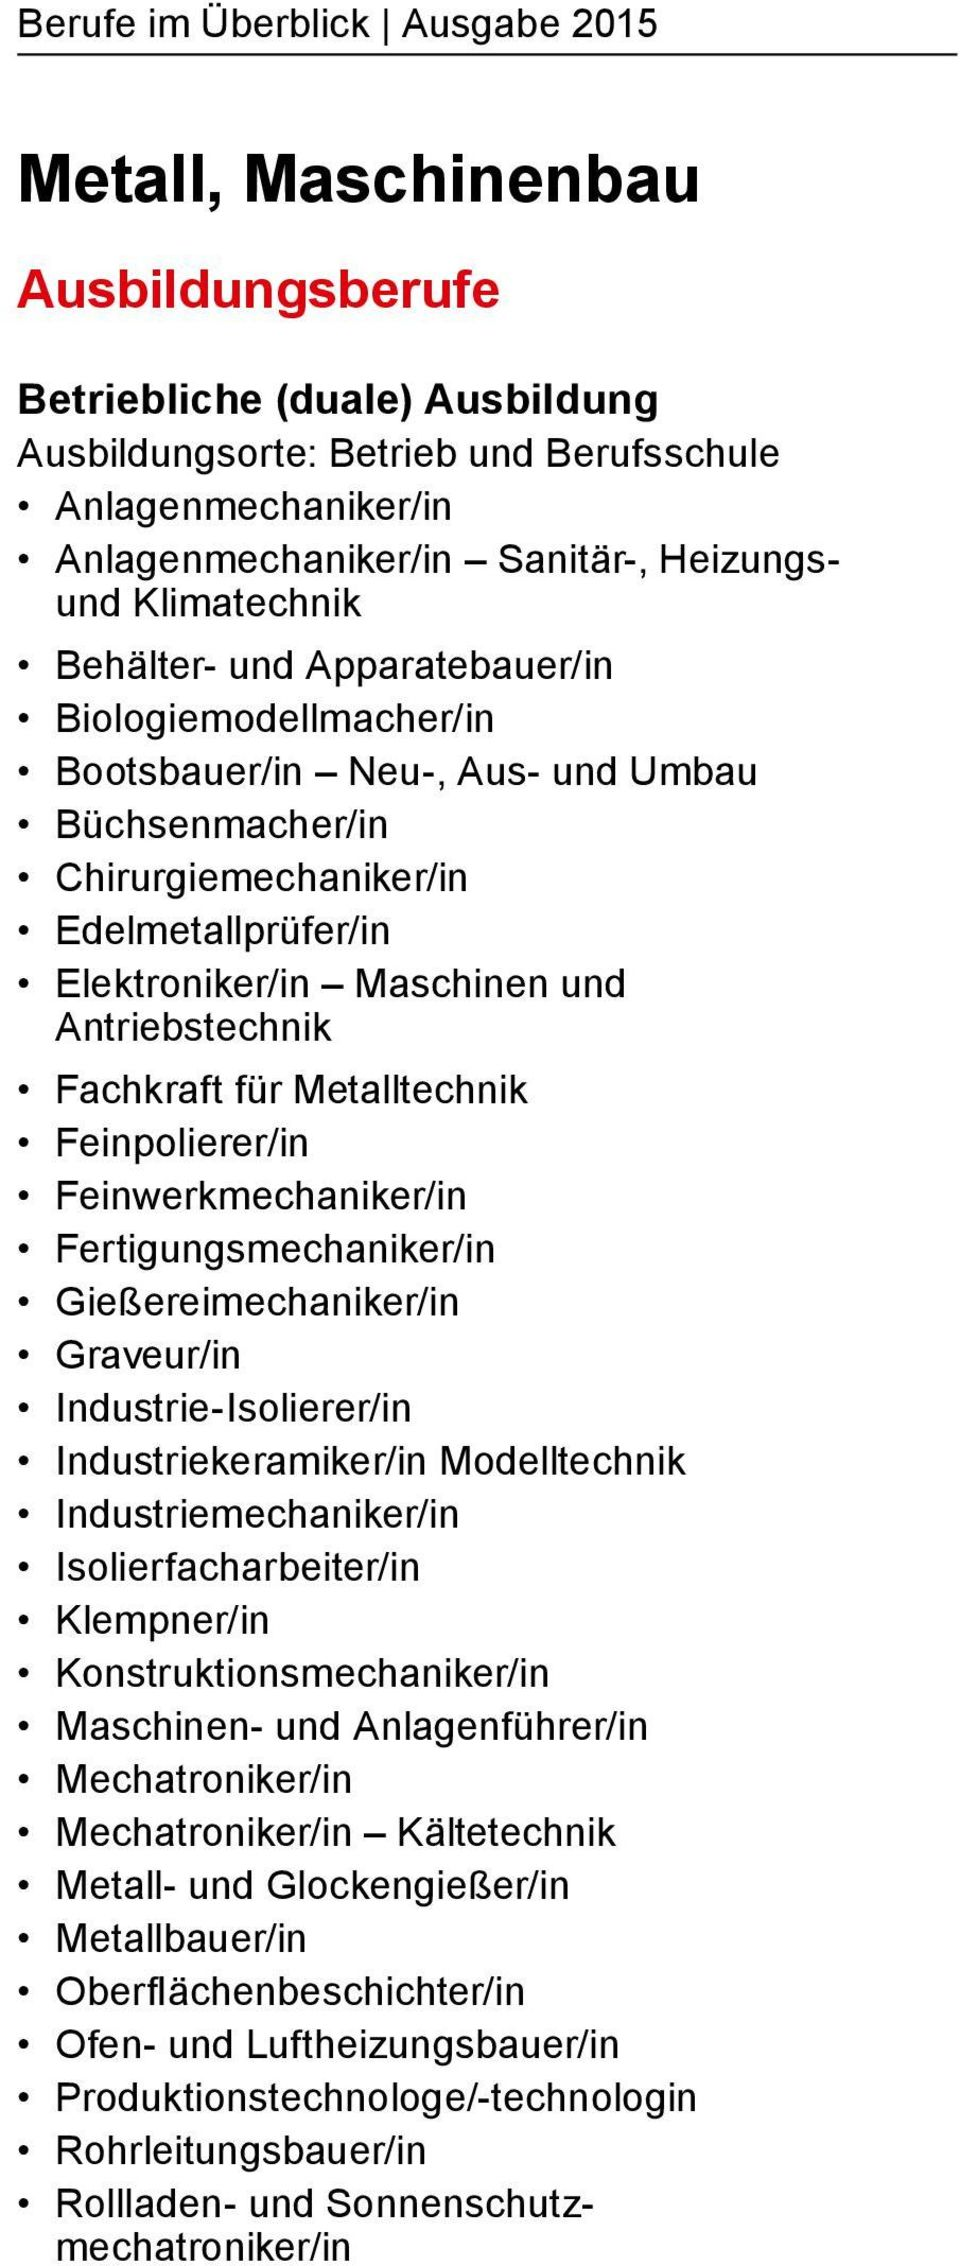 Maschinen und Antriebstechnik Fachkraft für Metalltechnik Feinpolierer/in Feinwerkmechaniker/in Fertigungsmechaniker/in Gießereimechaniker/in Graveur/in Industrie-Isolierer/in Industriekeramiker/in